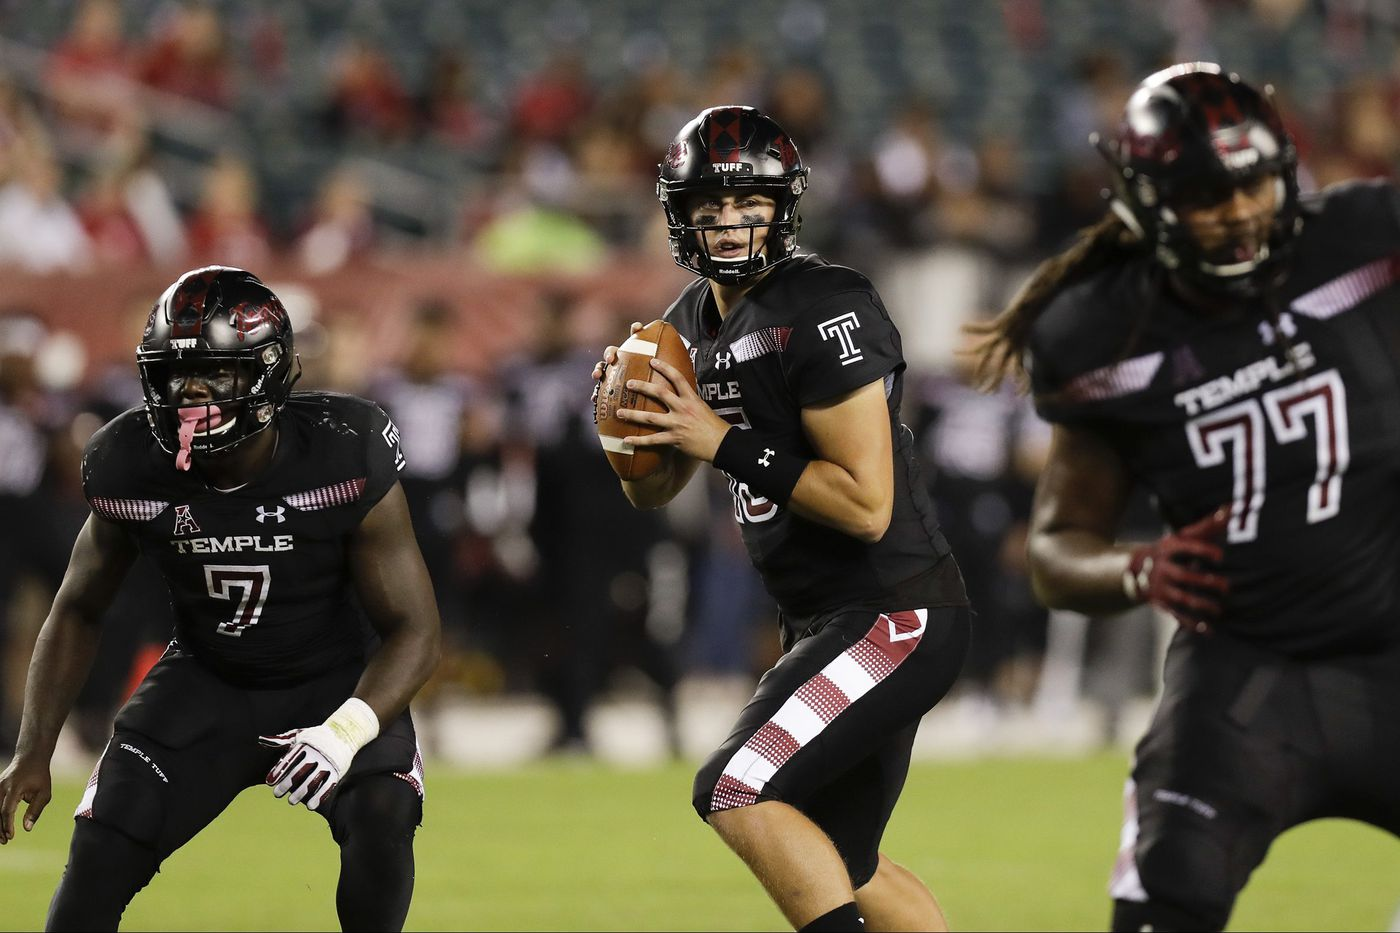 Temple once again in a quarterback dilemma, this time between Frank Nutile and Anthony Russo